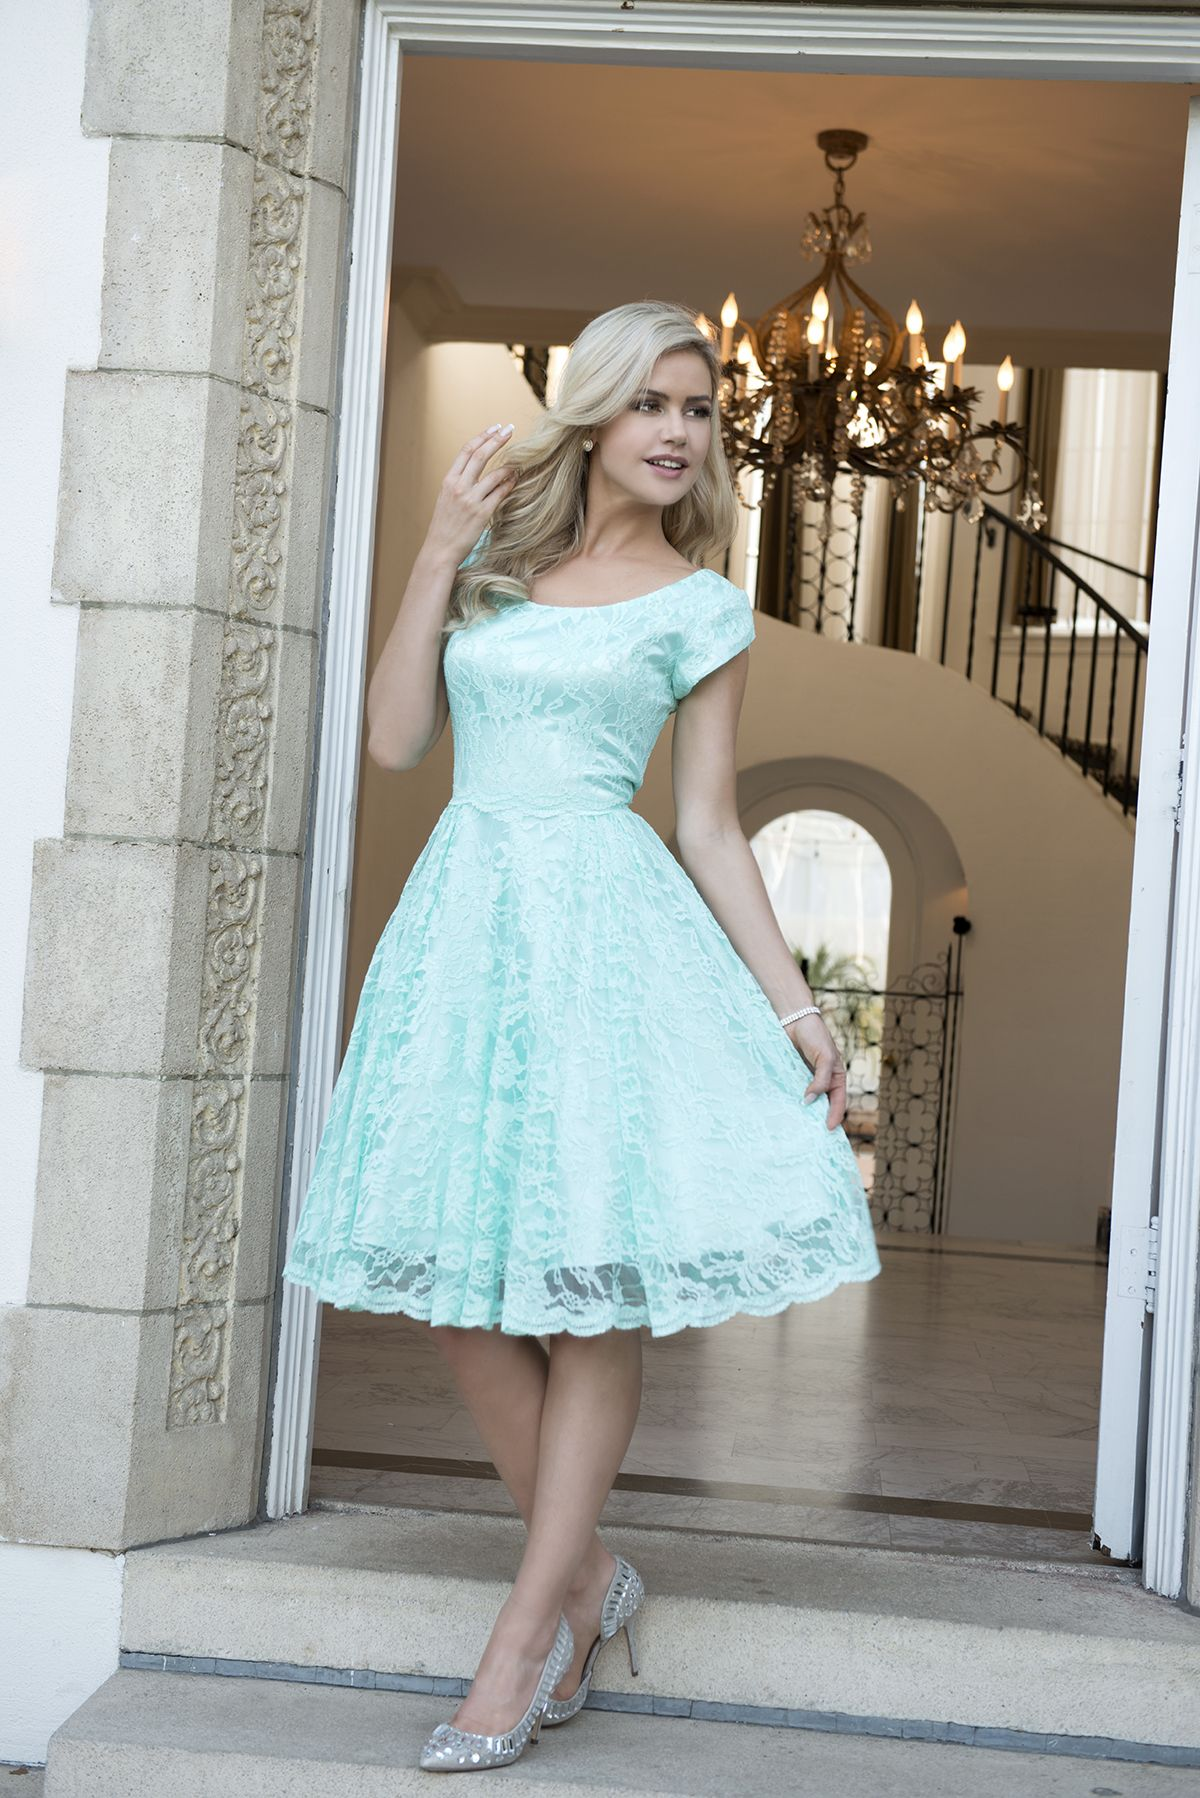 Devory-V | Modest Prom Dresses | Pinterest | Modest prom dresses ...